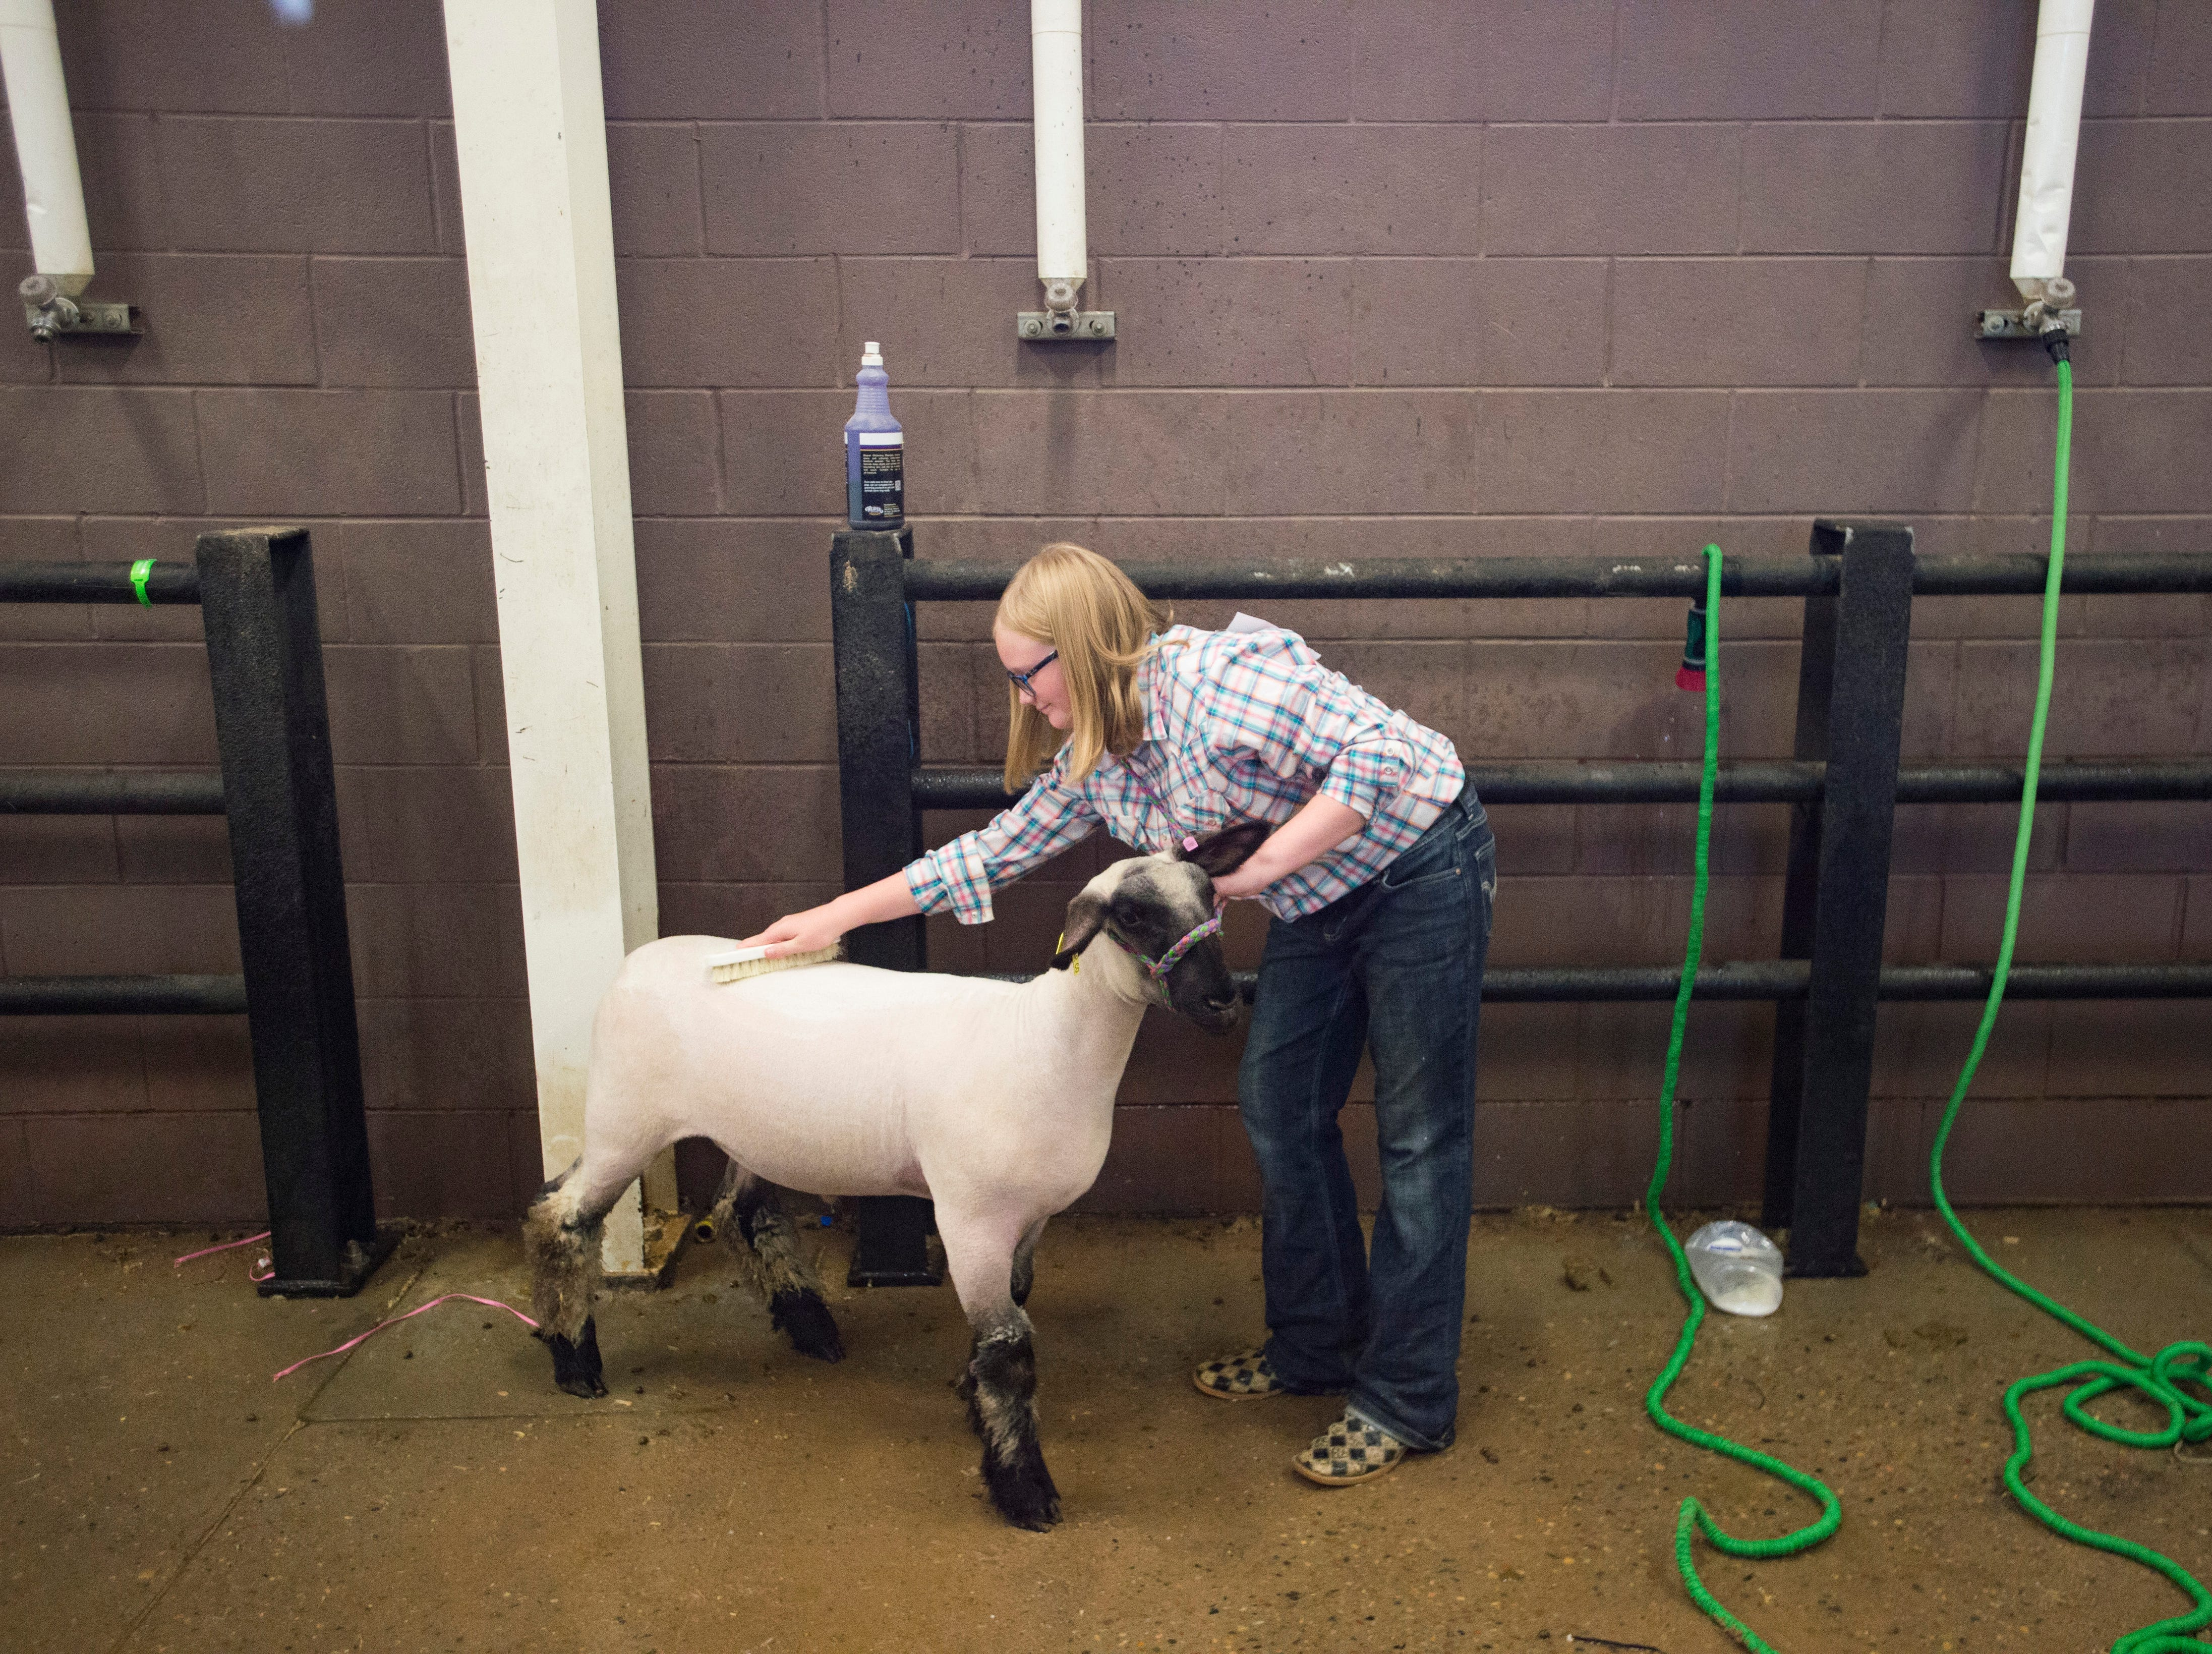 Audrianna Hardley gives her lamb a bath before it is sold at the Larimer County Fair Youth Livestock Sale at The Ranch in Loveland on Wednesday, August 8, 2018.